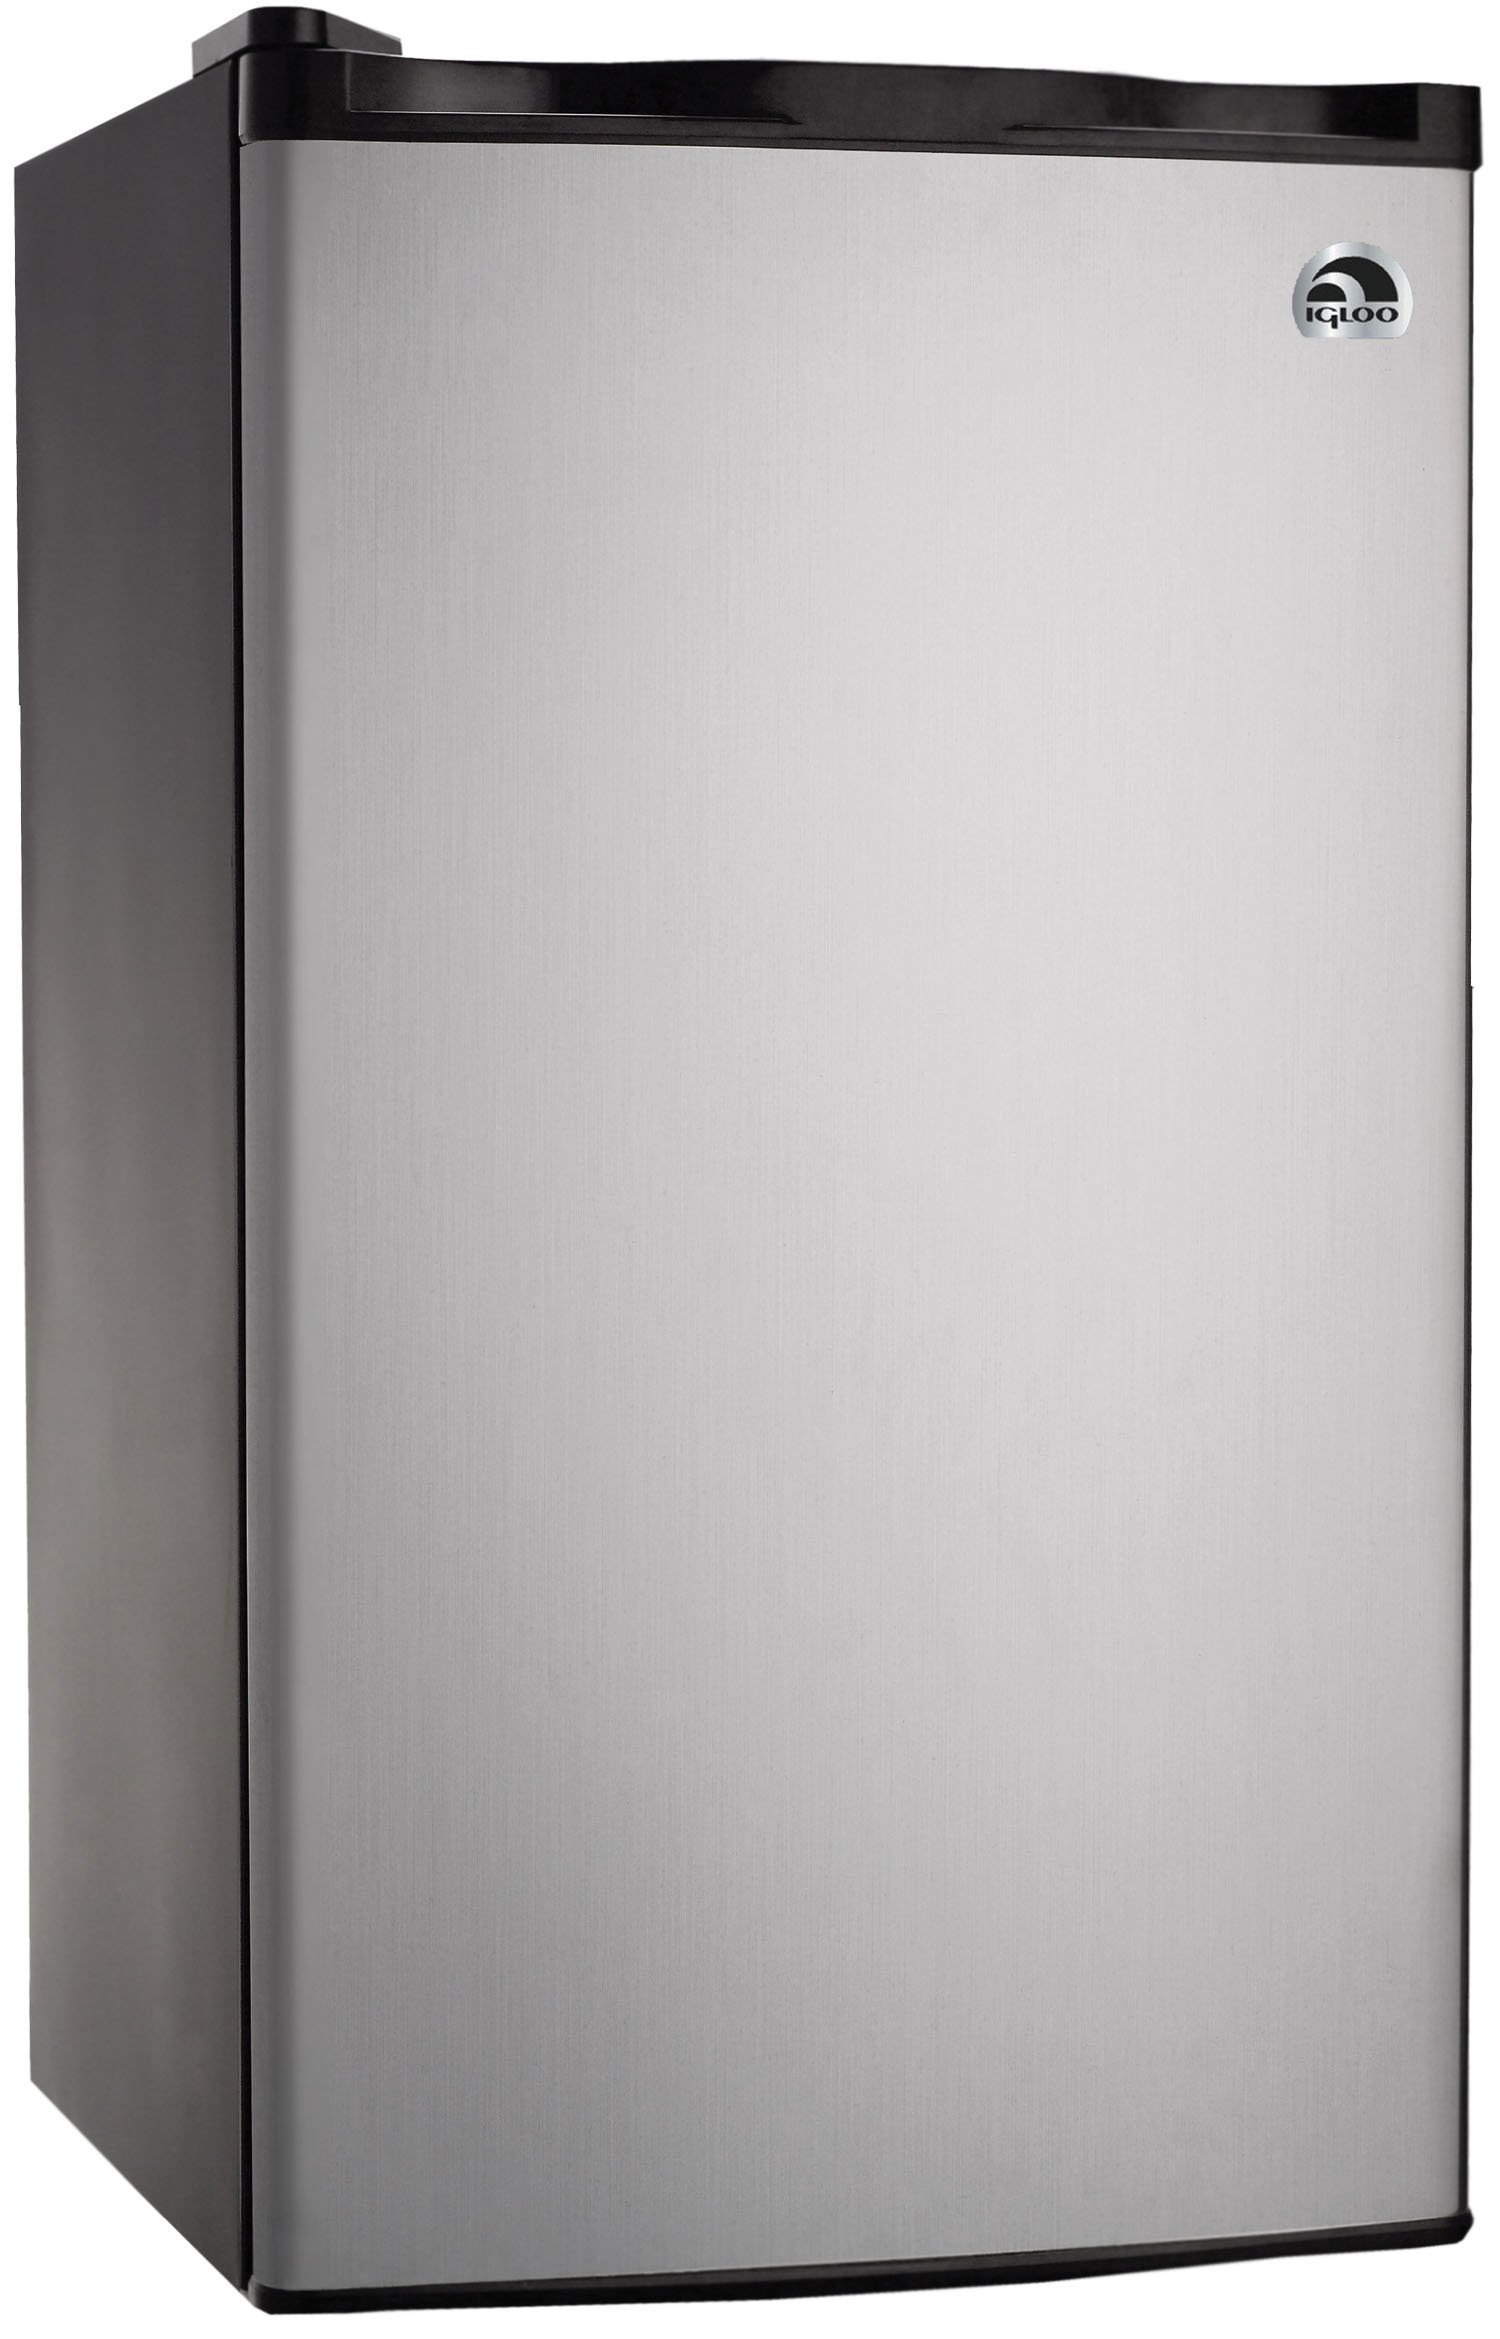 RCA RFR321-FR320/8 IGLOO Mini Refrigerator, 3.2 Cu Ft Fridge, Stainless Steel